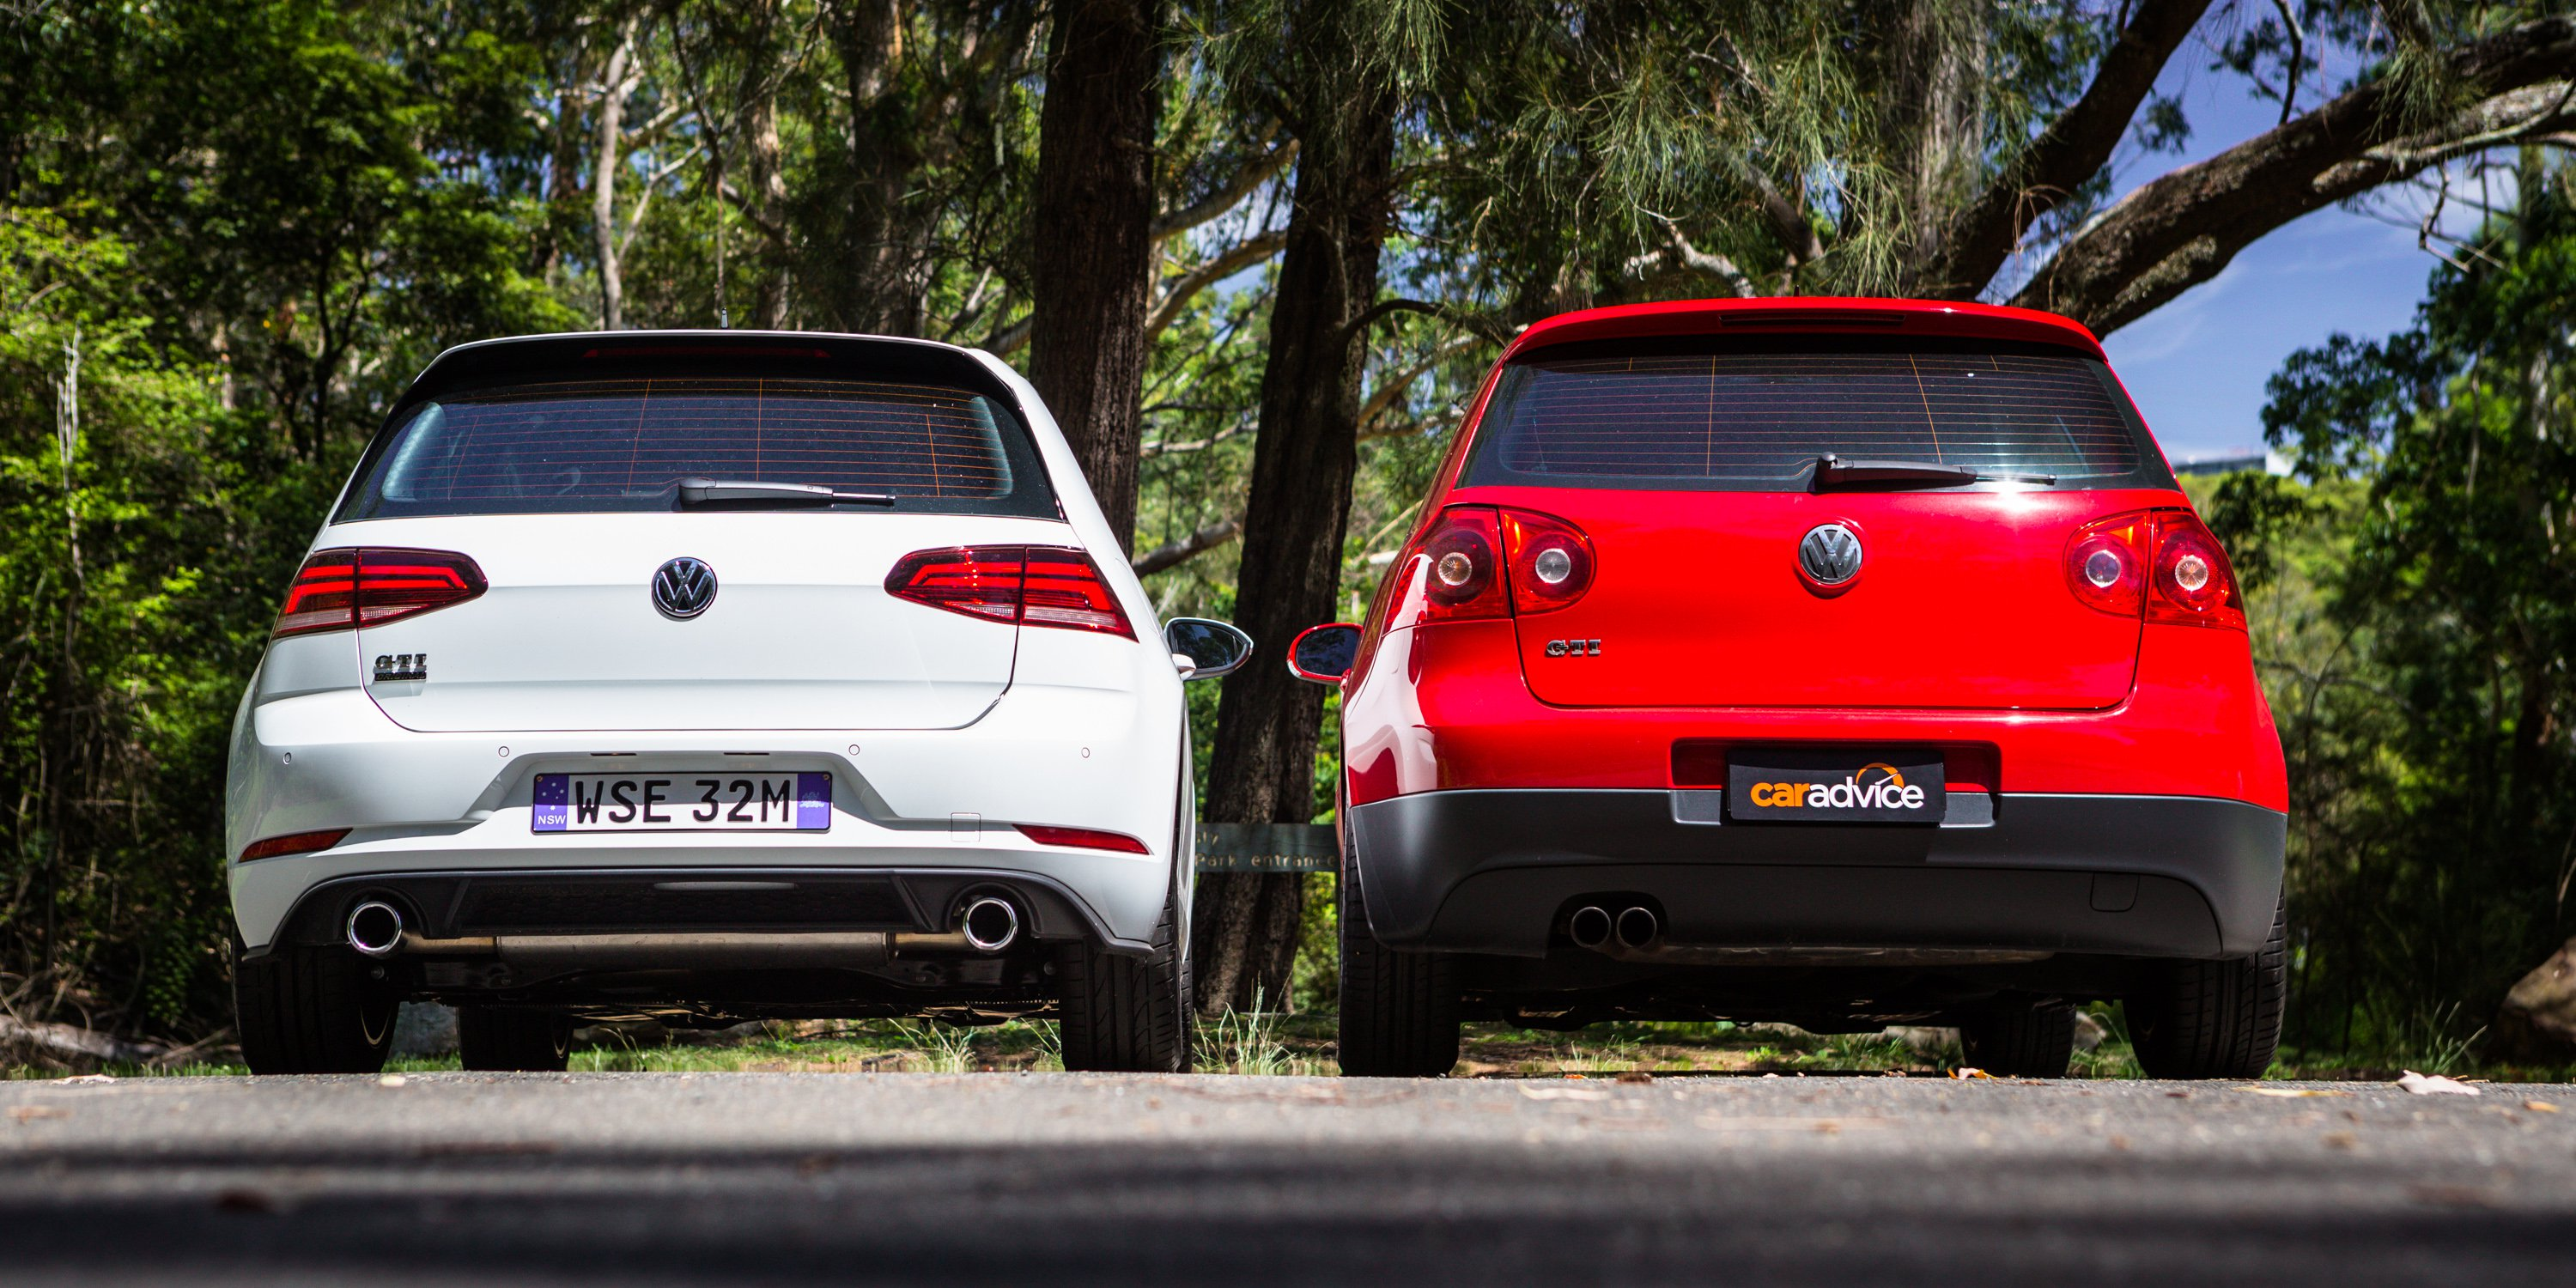 Volkswagen Golf GTI Old v New: 2018 MkVII v 2007 MkV